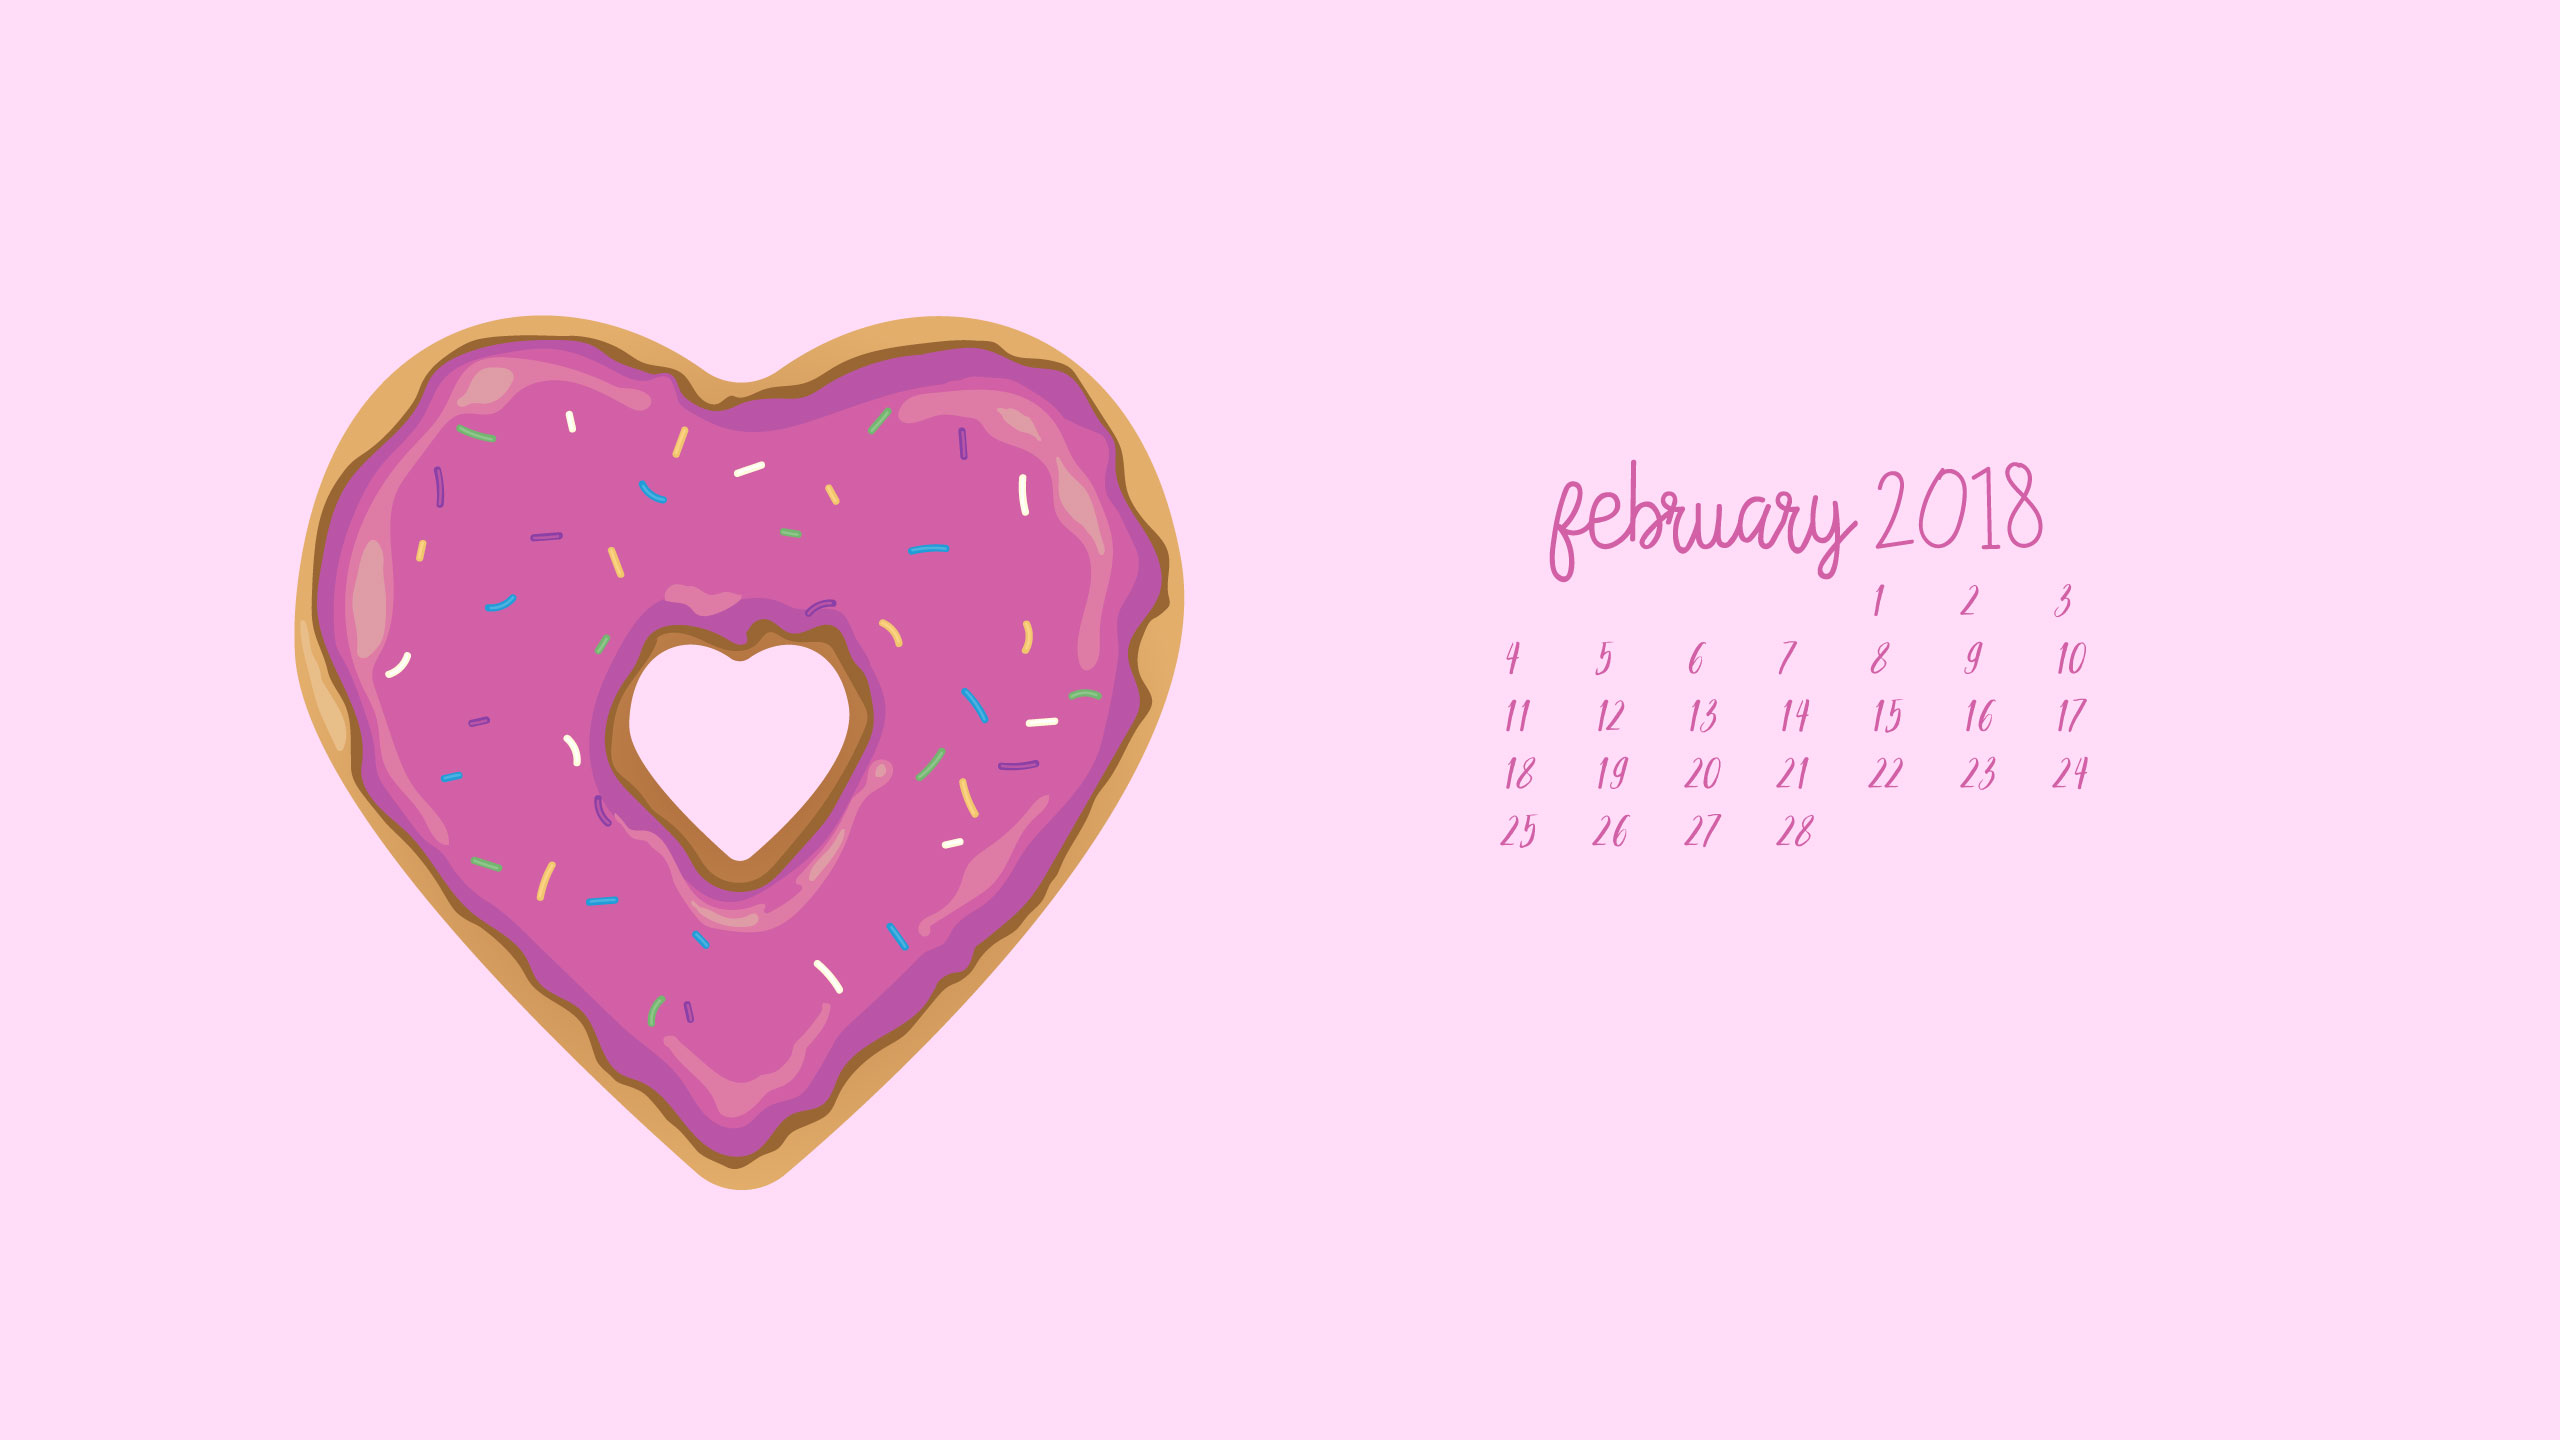 Heart Shaped Doughnut Digital Wallpaper: Grab this fun digital wallpaper and celebrate love in style!